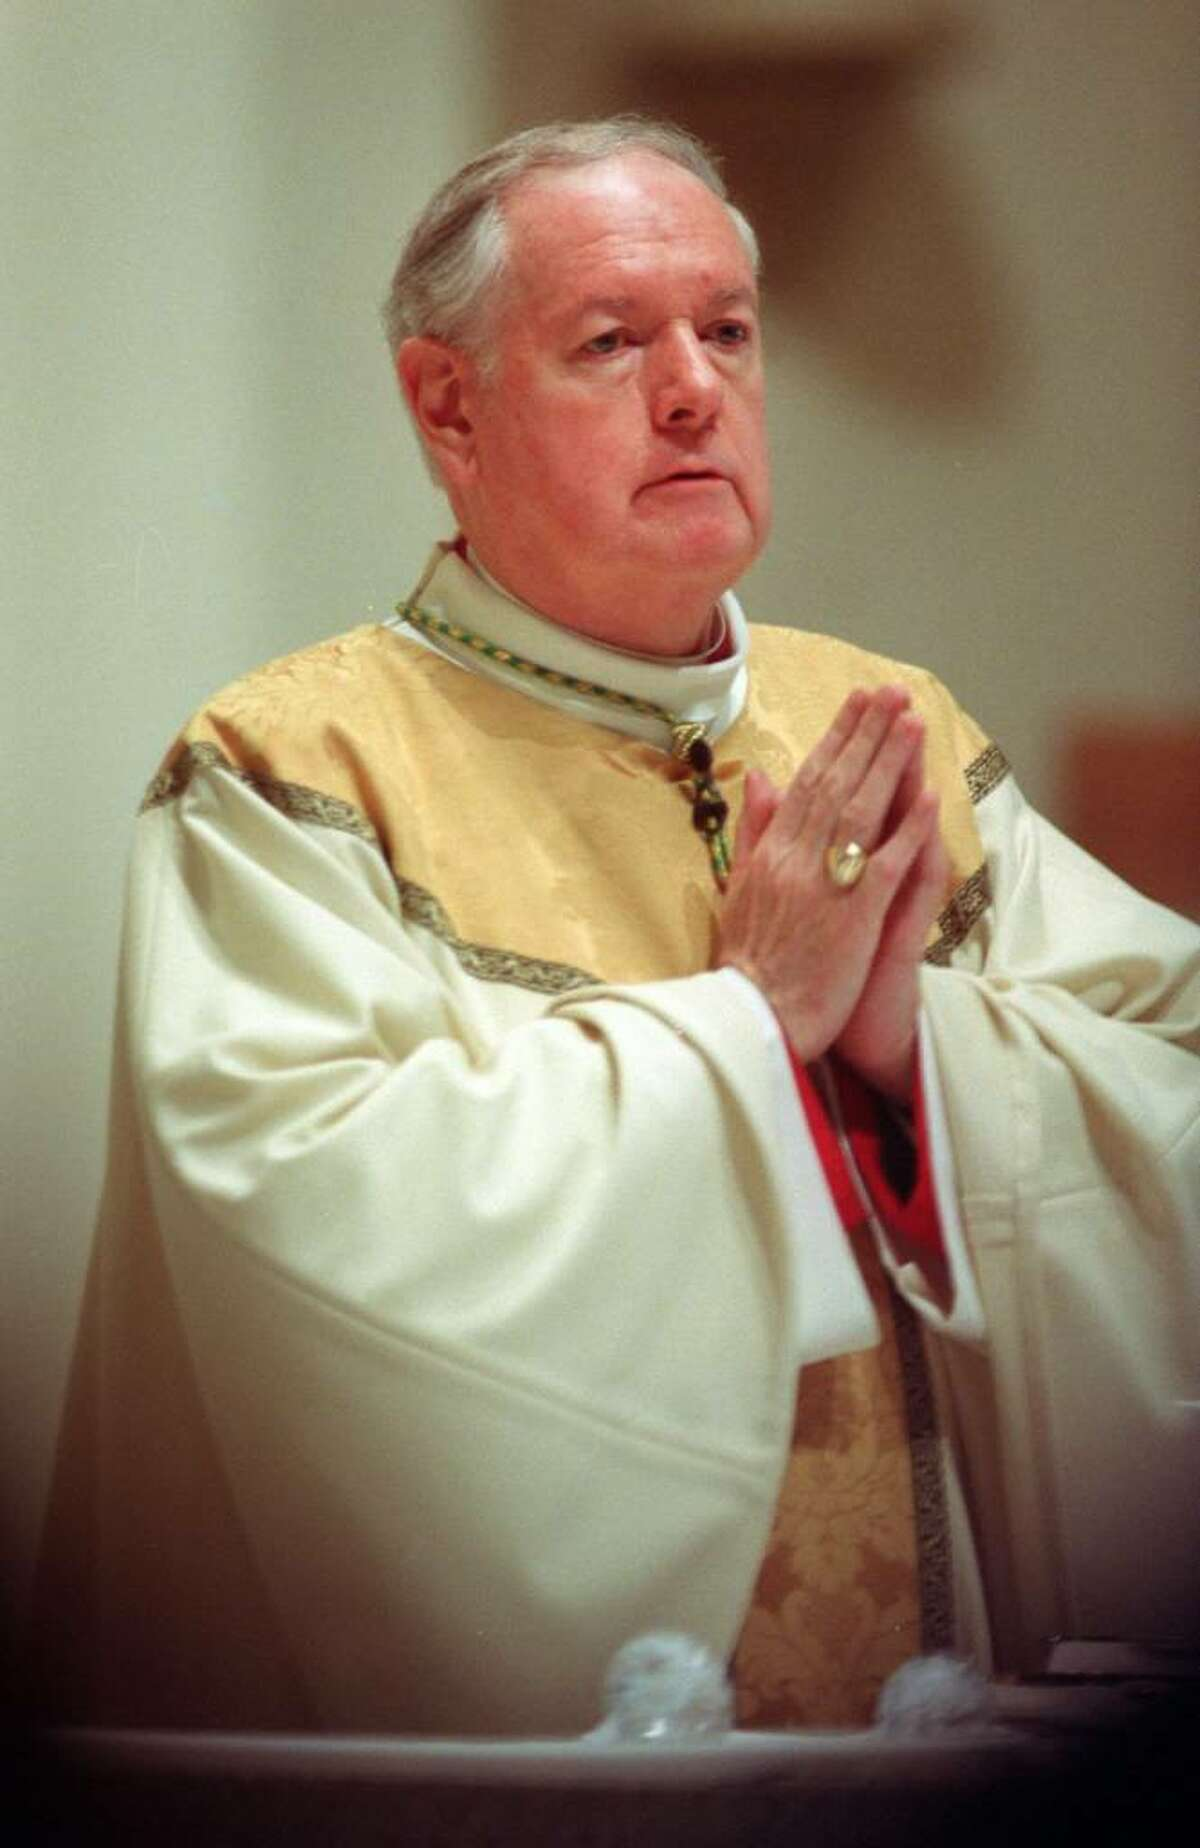 Cardinal Edward Michael Egan, photographed in Bridgeport, Conn., date unknown. Egan served as Bishop of the Roman Catholic Diocese of Bridgeport from 1988-2000.